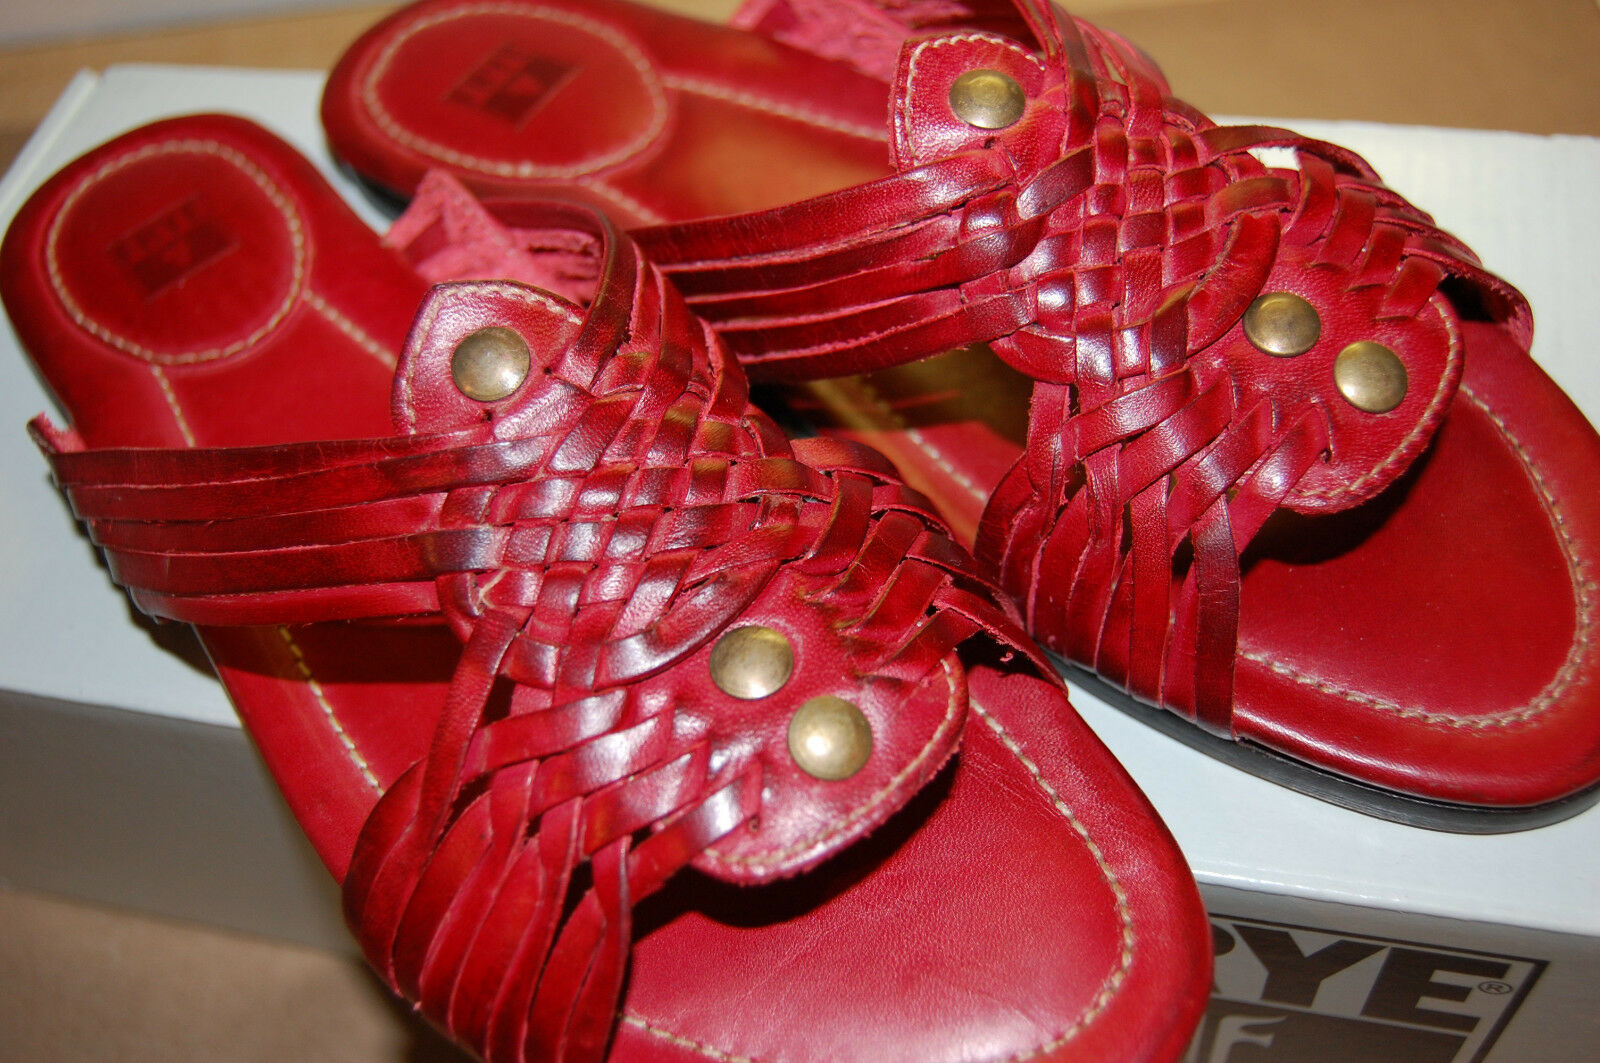 NIB Frye Jacey Huarache Slide rosso Medium    sandals Leather 6.5 top quality donna cac34c